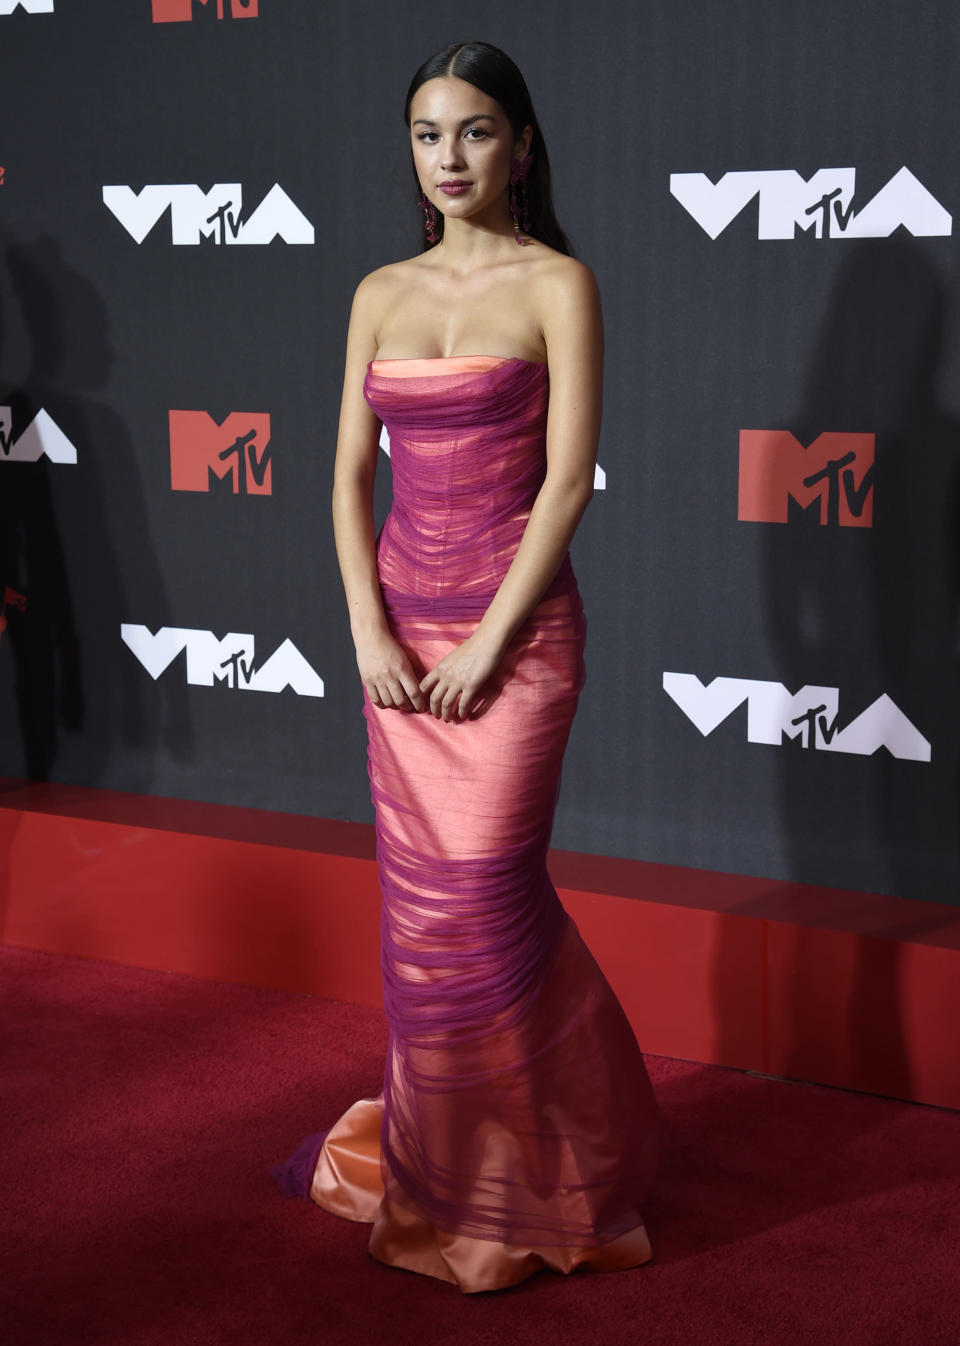 Olivia Rodrigo arrives at the MTV Video Music Awards at Barclays Center on Sunday, Sept. 12, 2021, in New York. (Photo by Evan Agostini/Invision/AP)